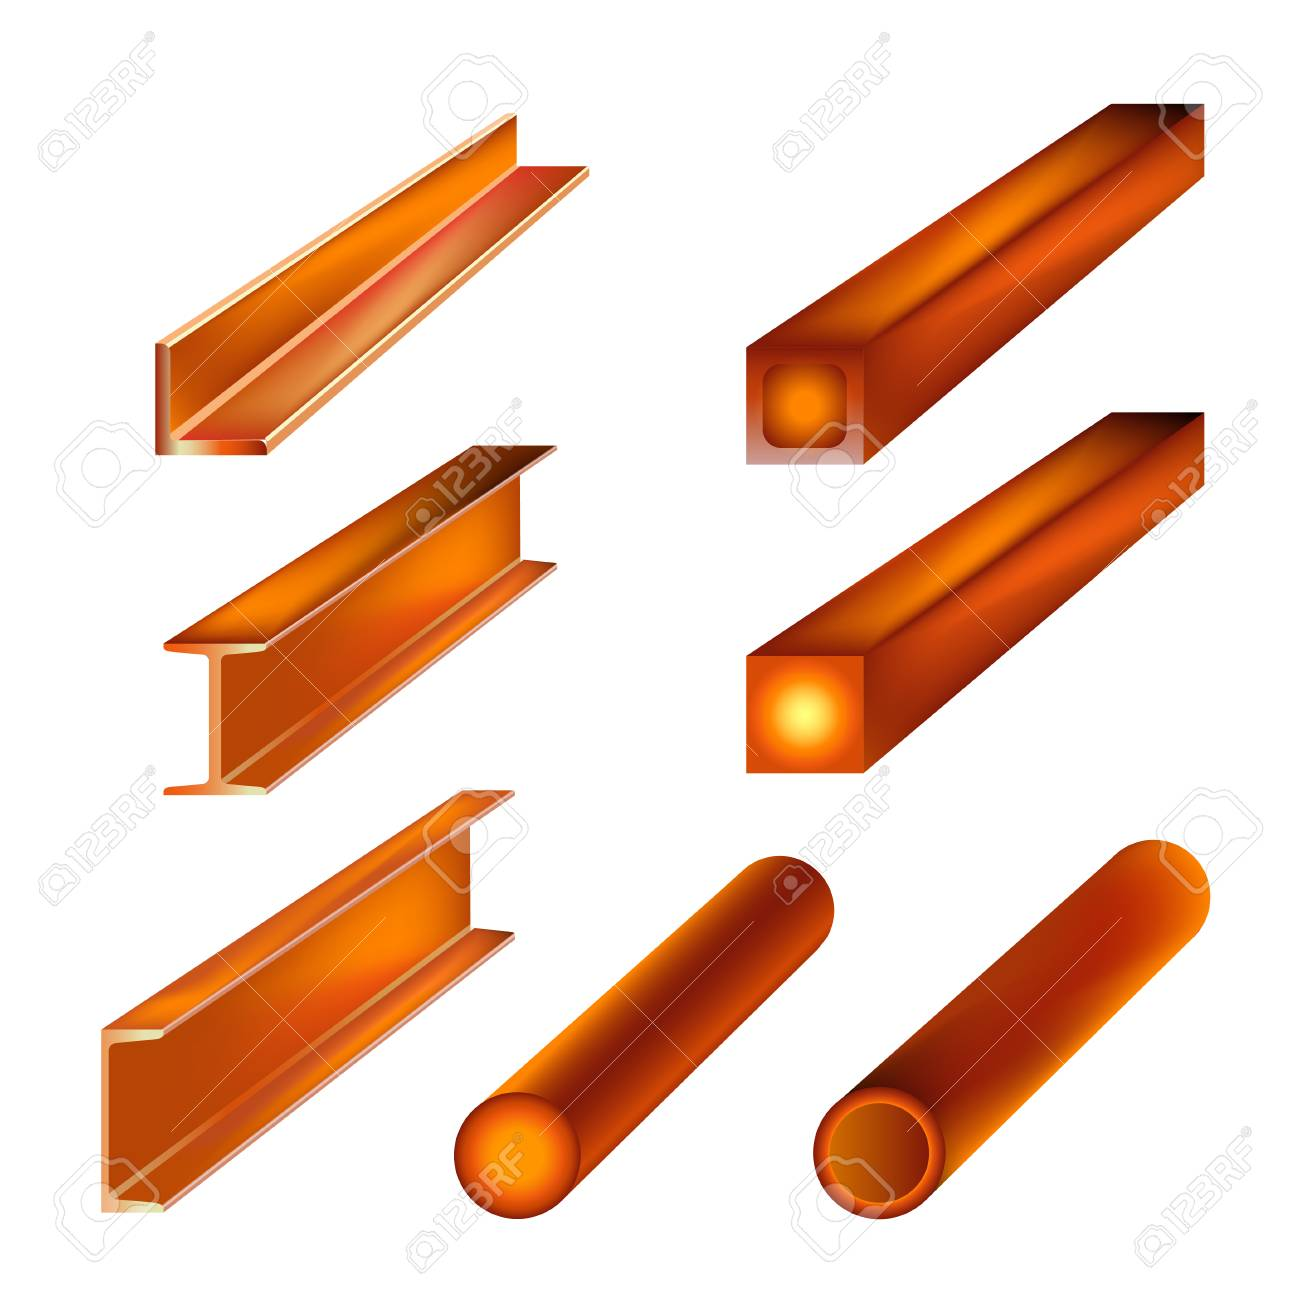 Hot rolled metal products. Vector illustration isolated on white background - 99019015